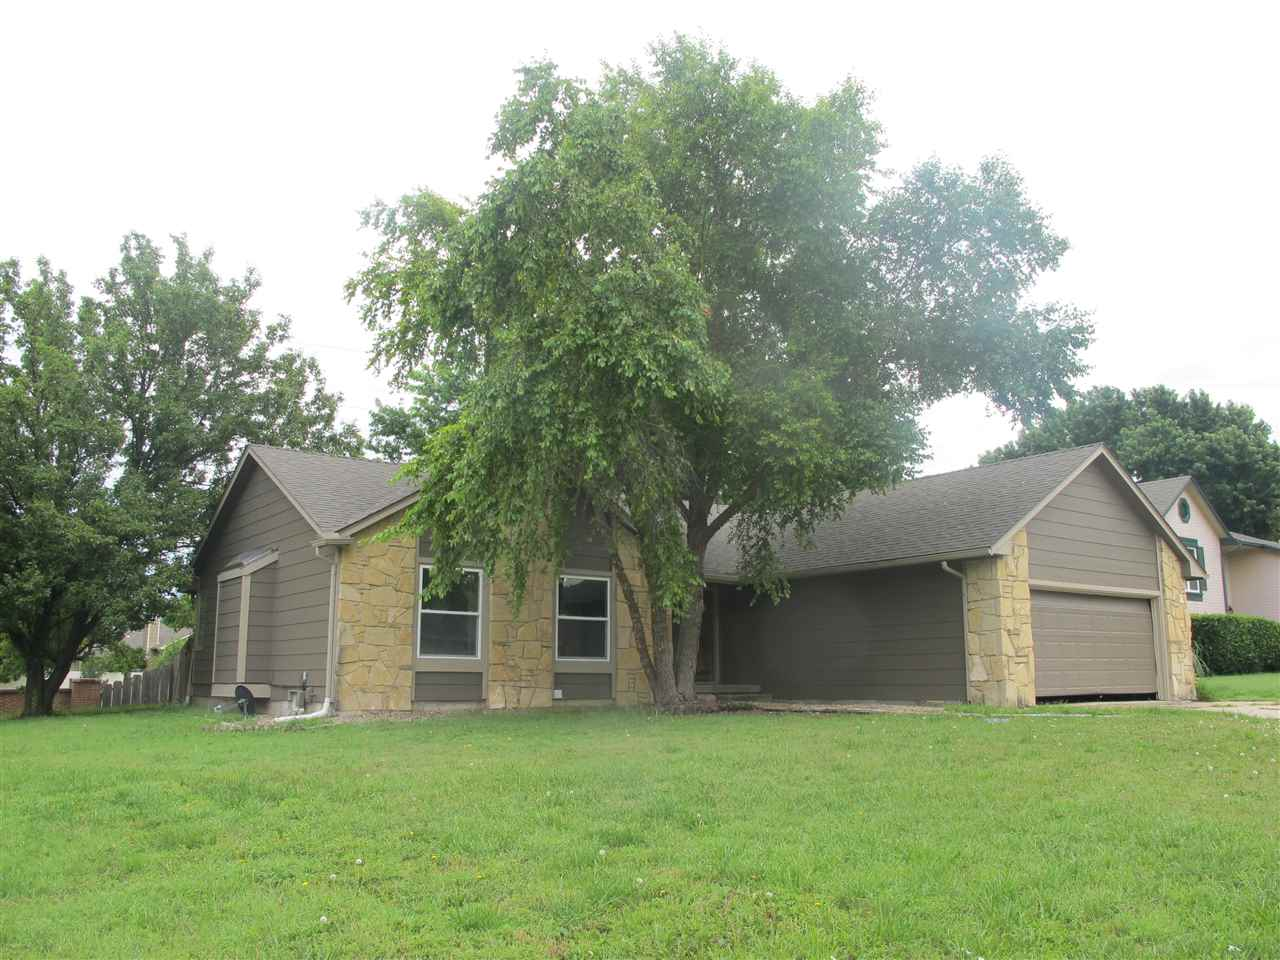 13900 E Lockmoor Circle, Wichita, KS 67230